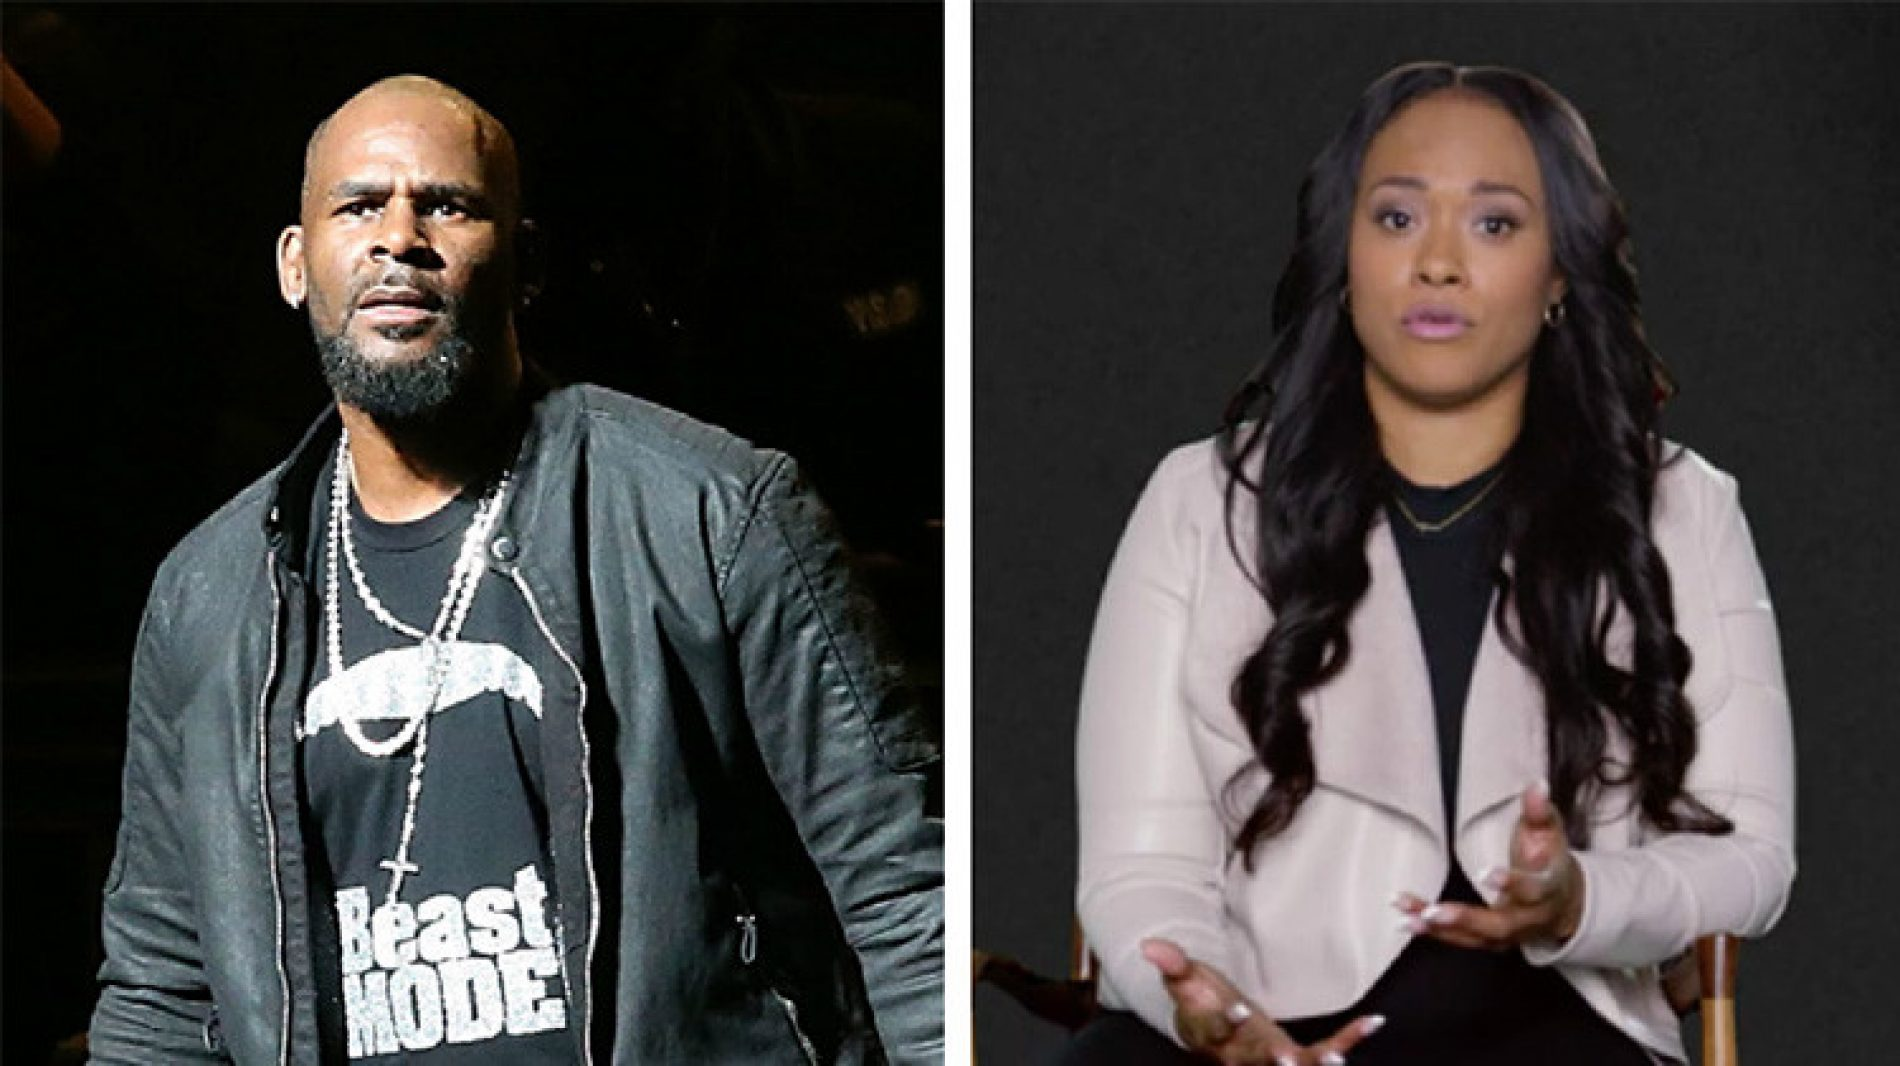 """R. Kelly's ex-girlfriend insinuates he might be """"into boys"""" because he """"likes penetration"""" in the bedroom"""